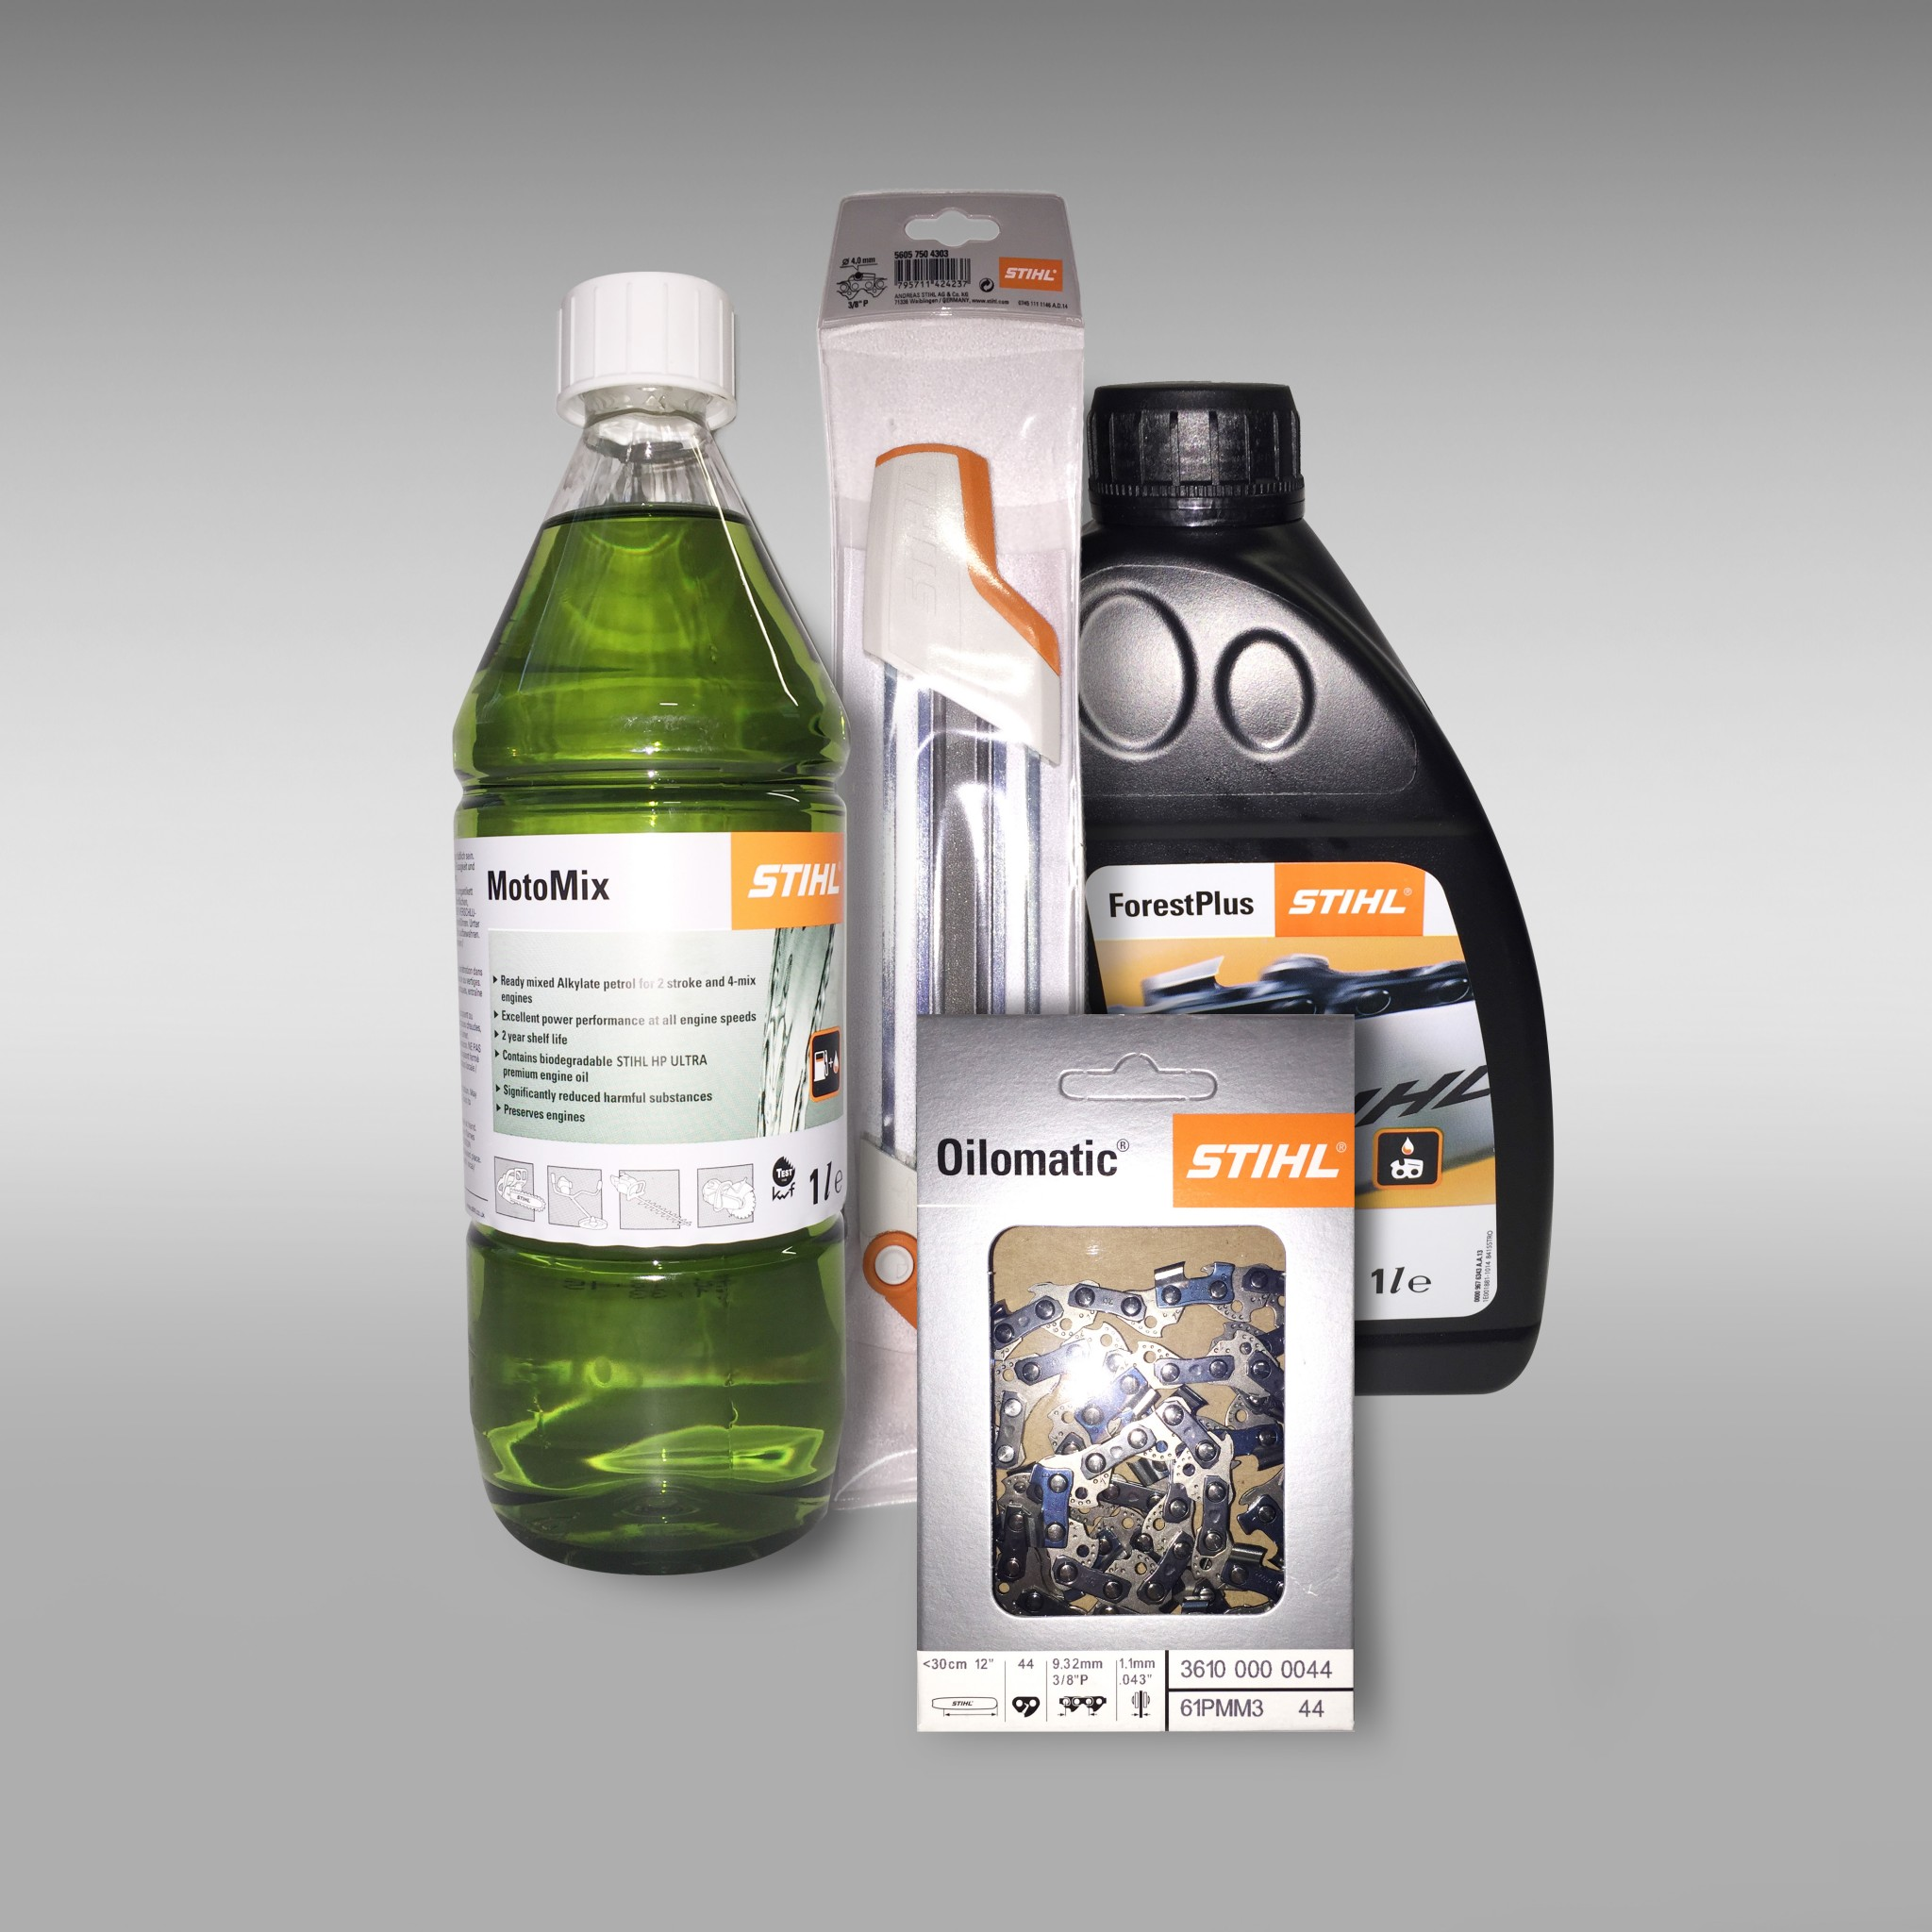 photo regarding Stihl Coupon Printable referred to as Coupon for stihl chainsaw / Infants r us 20 off coupon